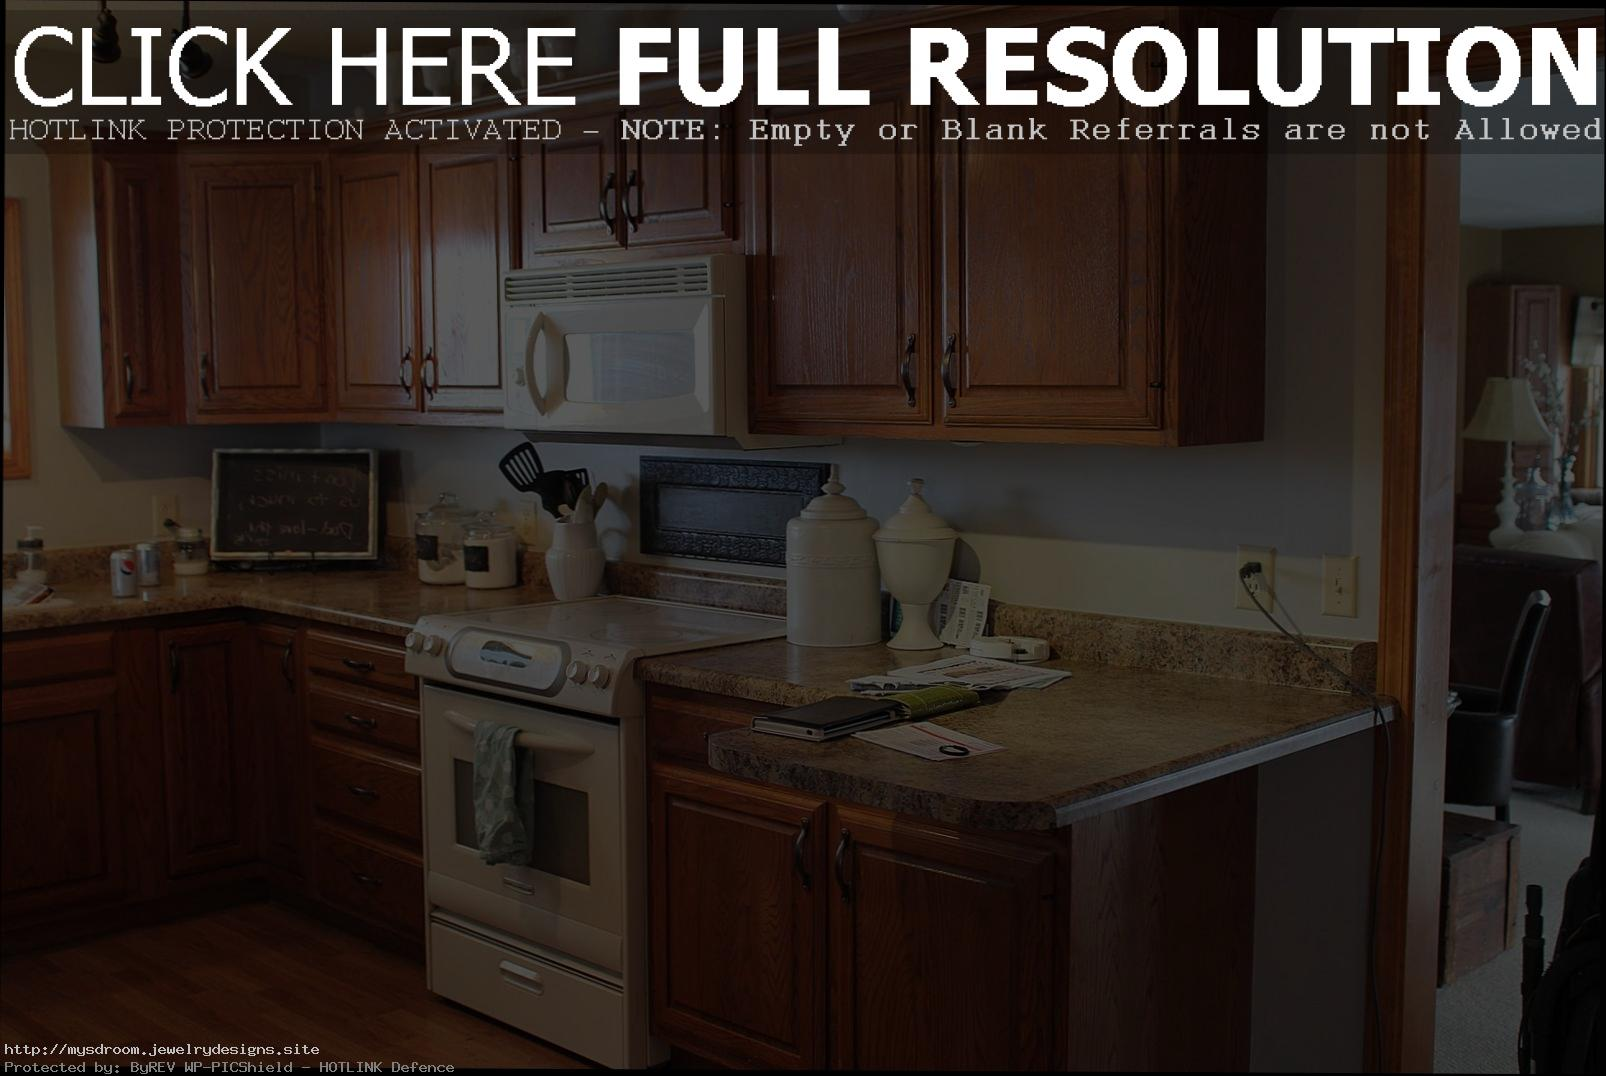 restaining-kitchen-cabinets-for-a-newer-look-kitchen-decorations.jpg